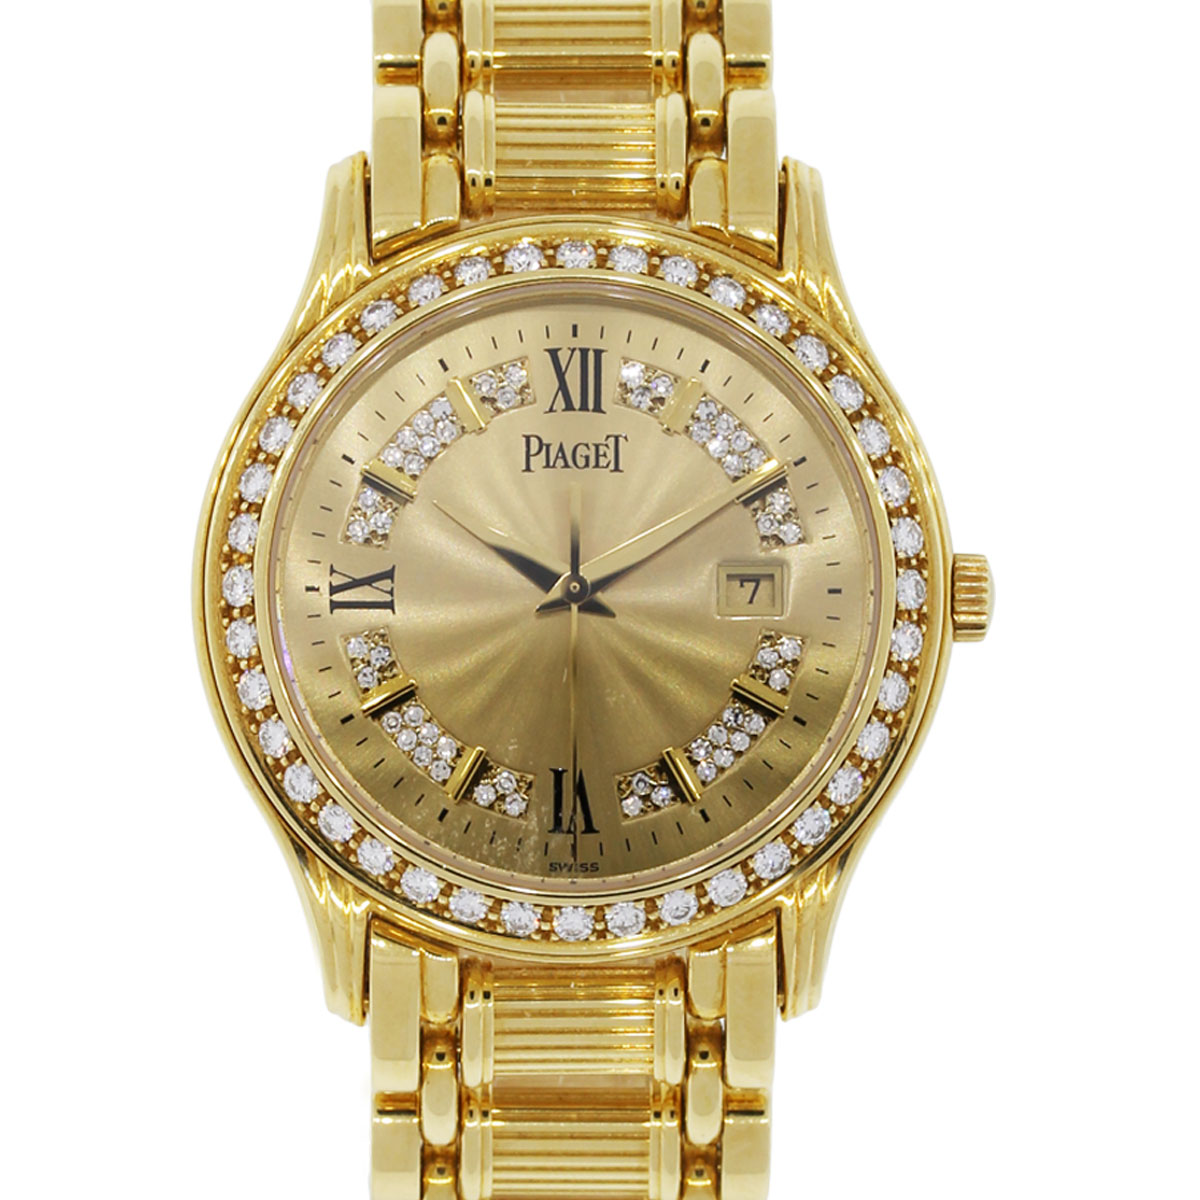 Diamond Watch Piaget Polo 24005 M 501 D 18k Yellow Gold Diamond Watch